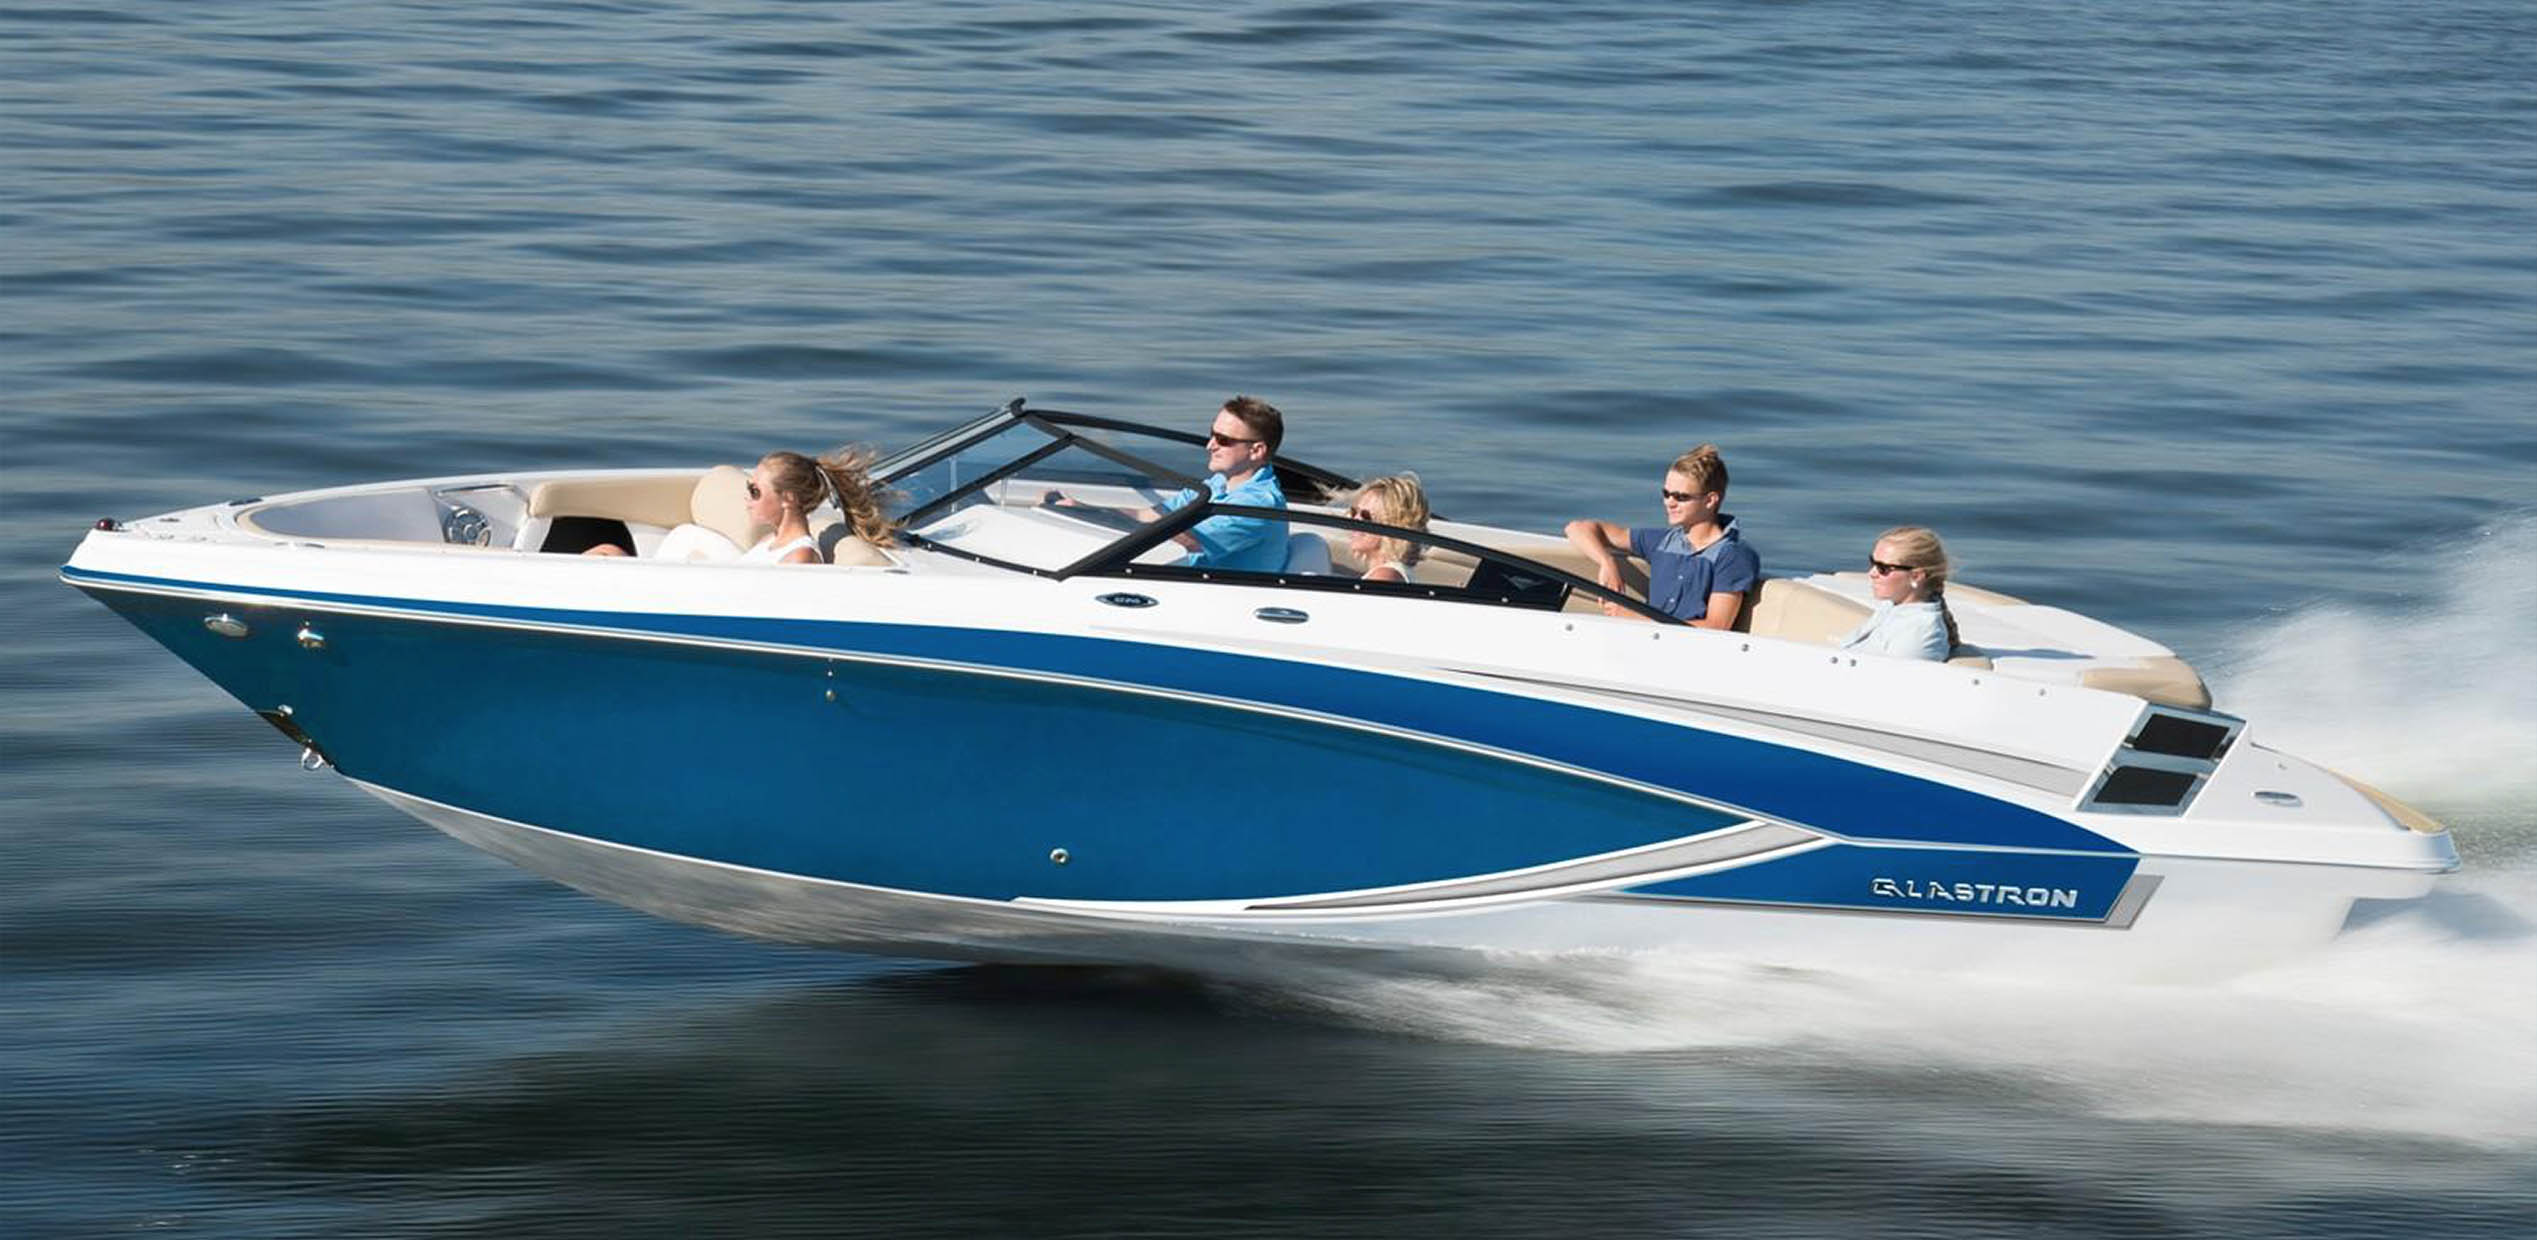 Glastron Gt 207 Boats For Sale In Palm Beach Fl